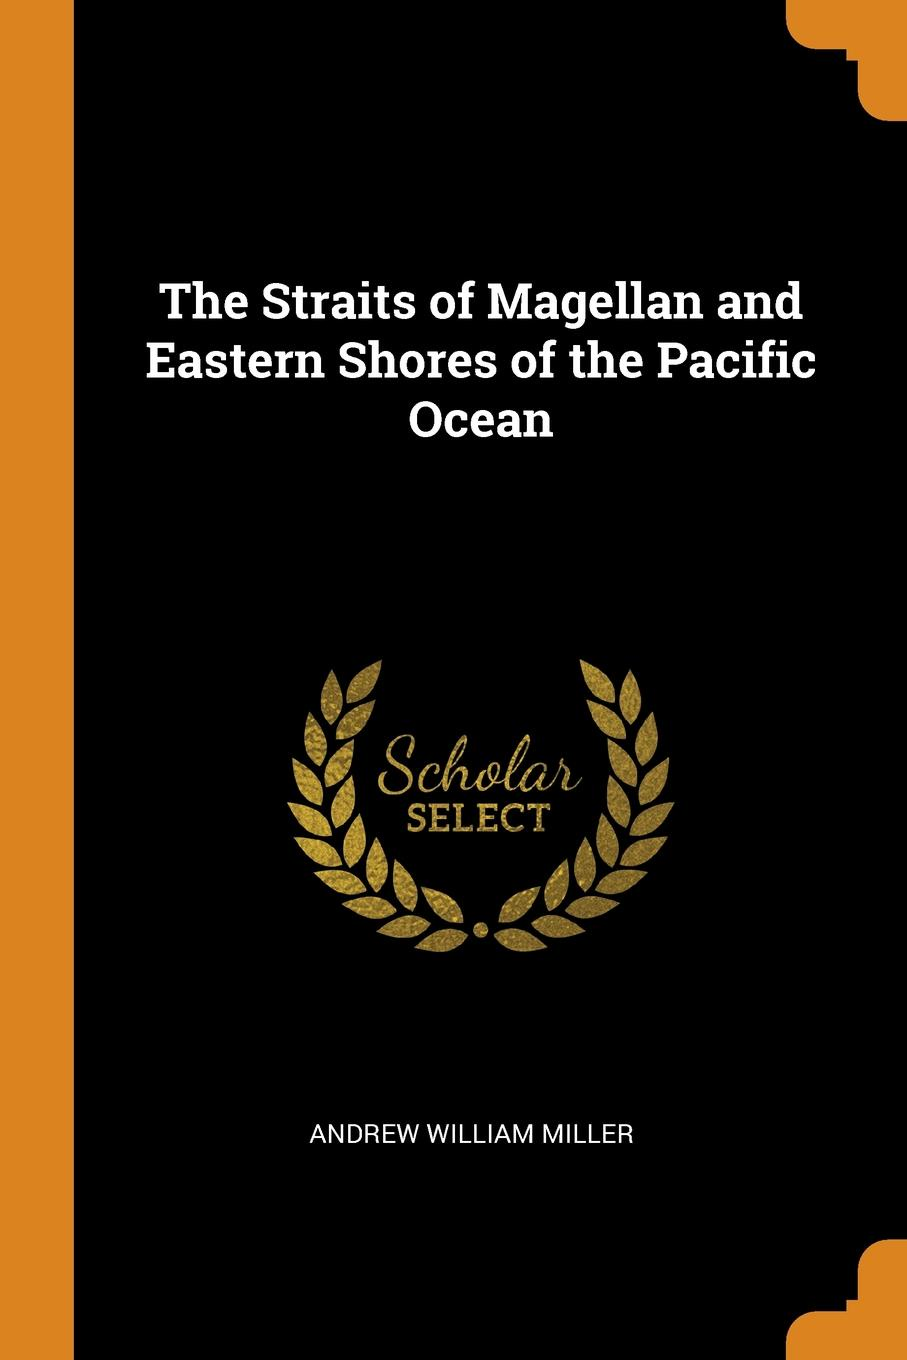 The Straits of Magellan and Eastern Shores of the Pacific Ocean